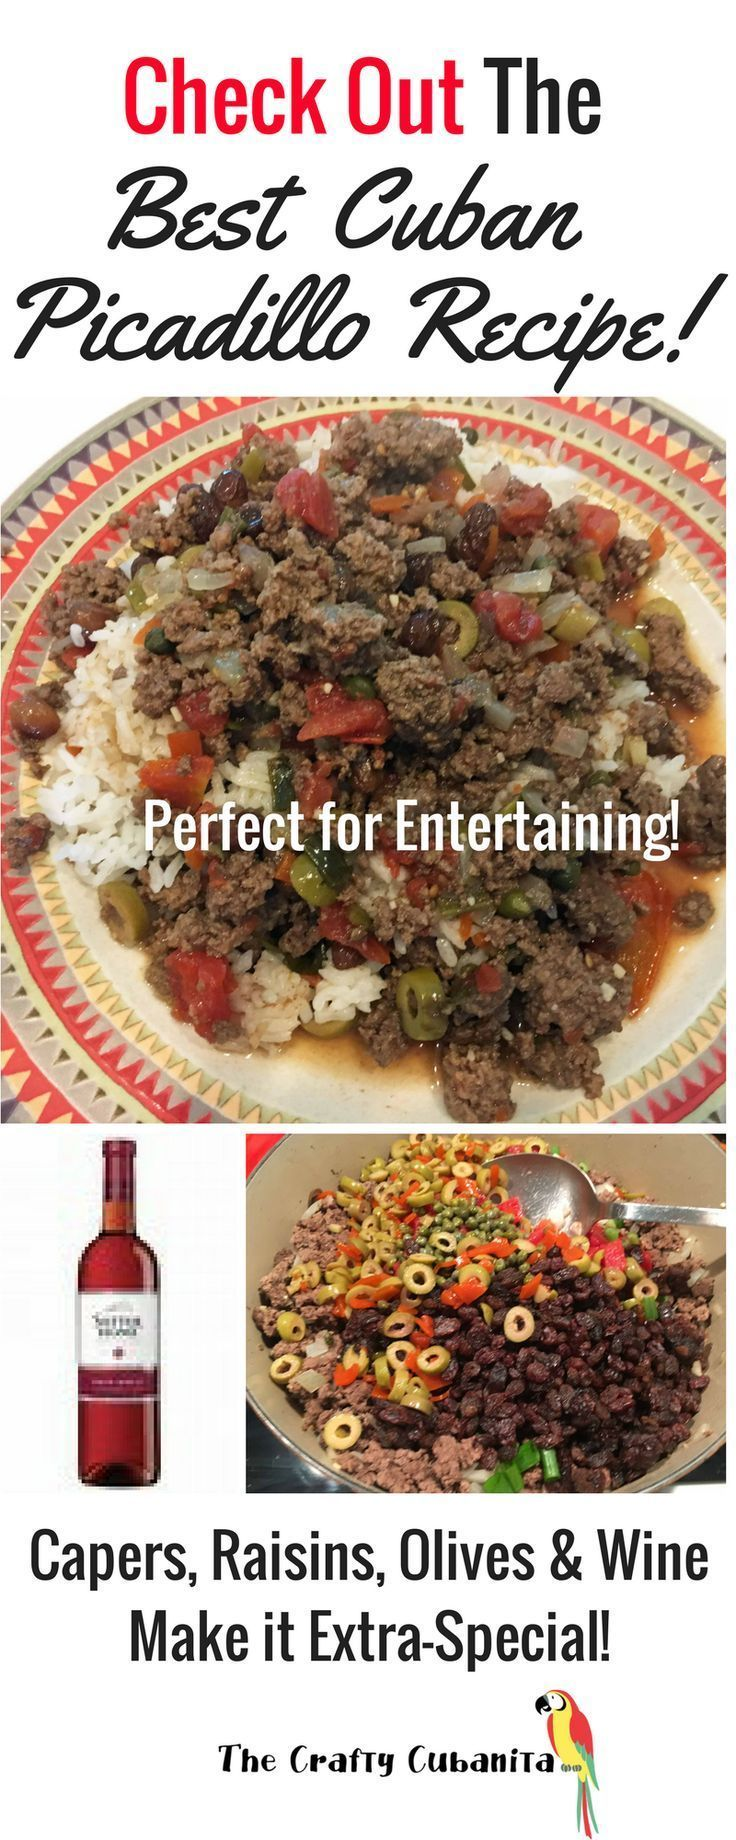 This is the Best Cuban Picadillo Recipe Ever!  Click through to find out how to make it!  http://thecraftycubanita.com/picadillo/  Authentic picadillo, authentic Cuban picadillo, Spanish picadillo recipe, cook picadillo, cuban cuisine, cuban beef dishes,